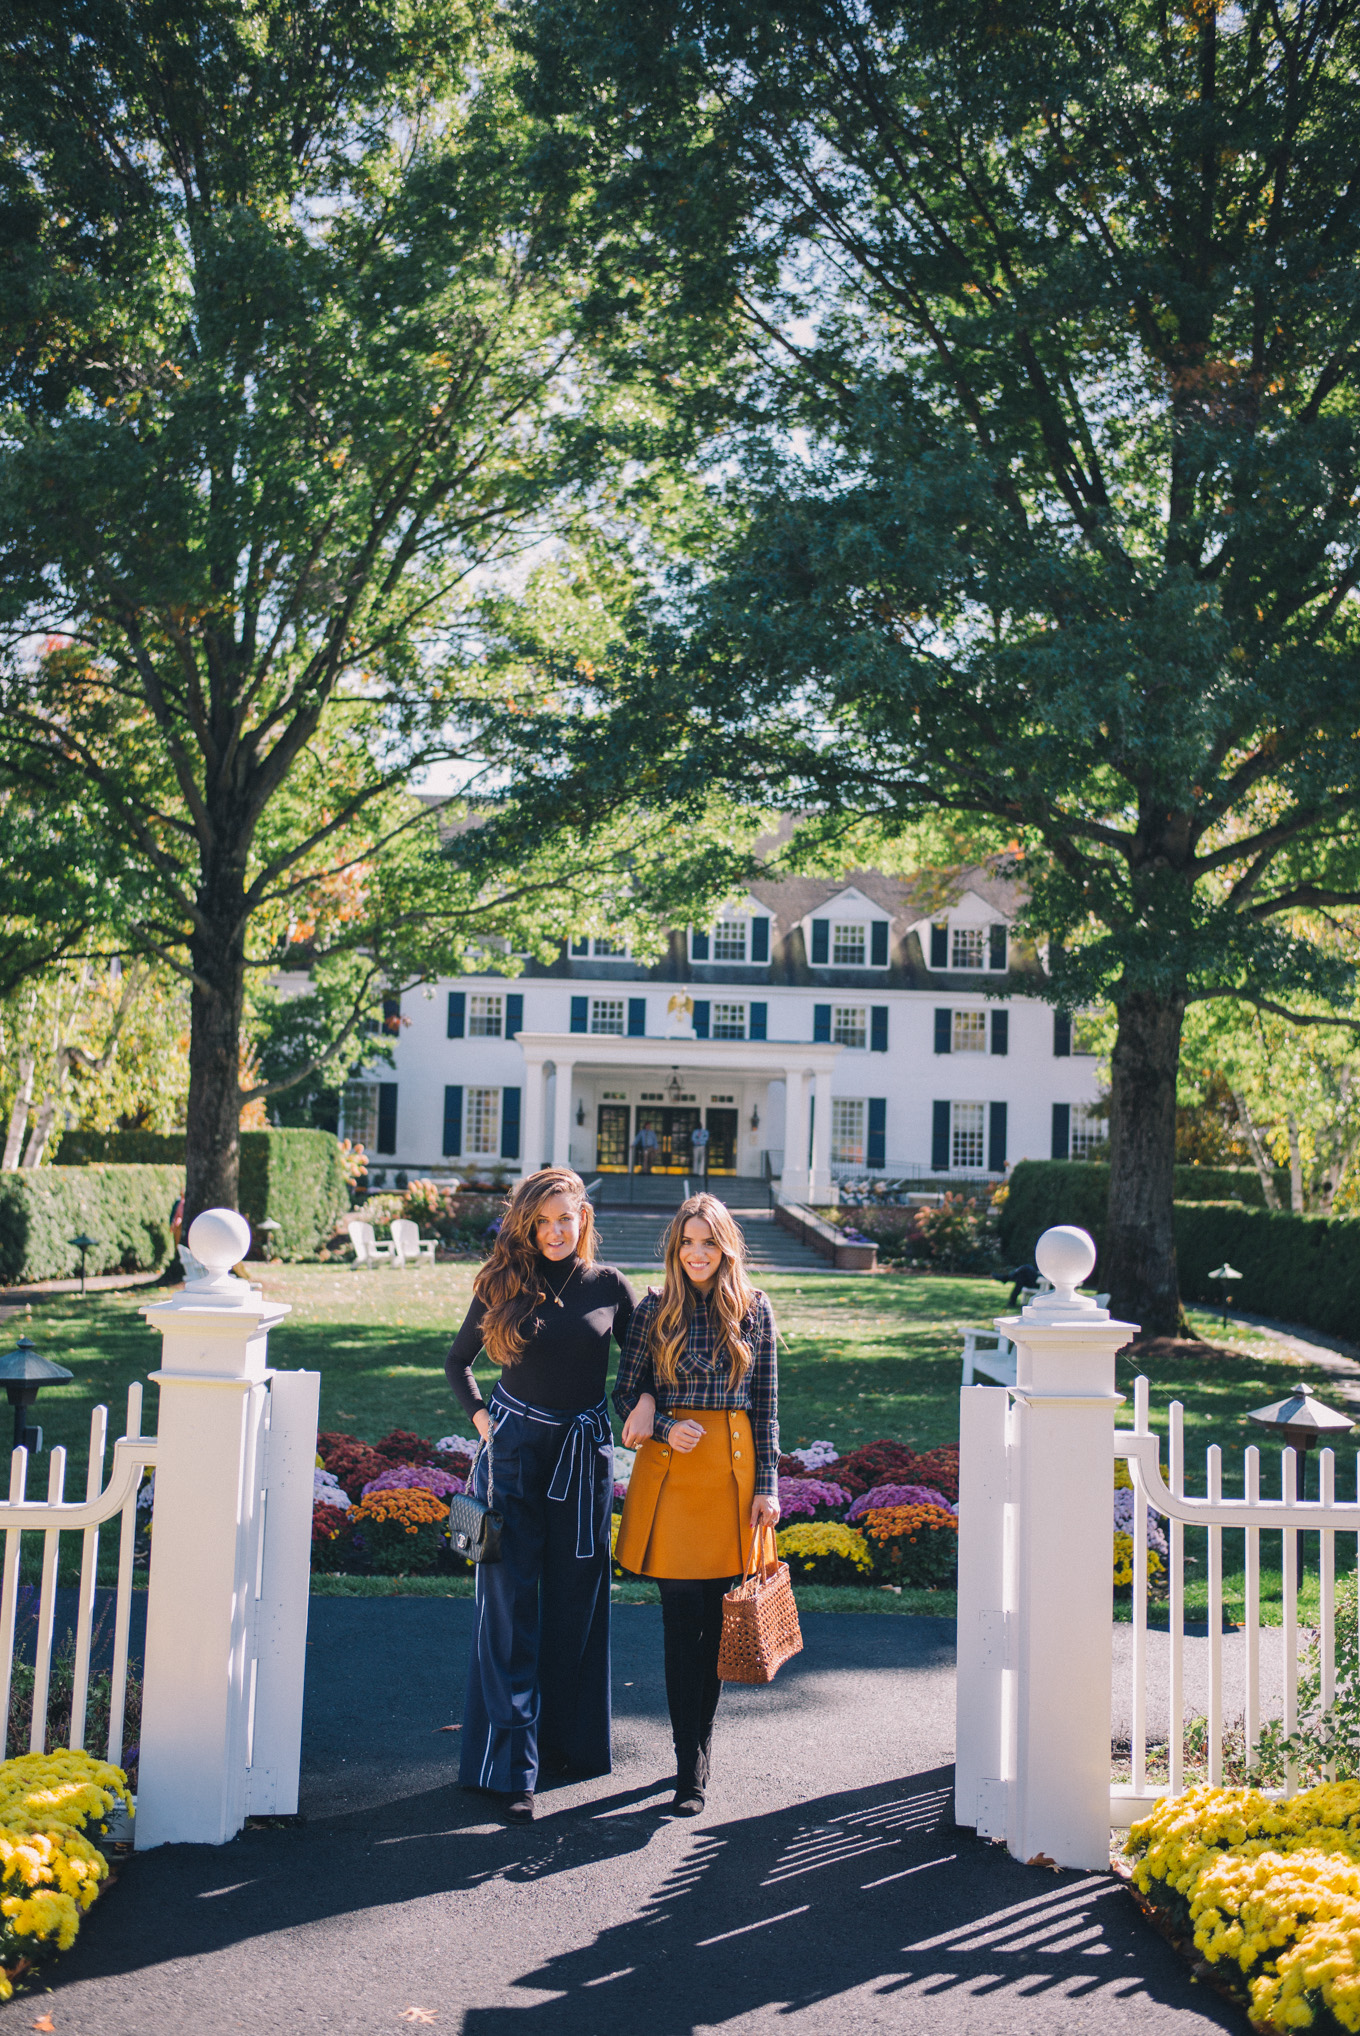 gmg-woodstock-vermont-fall-1002817